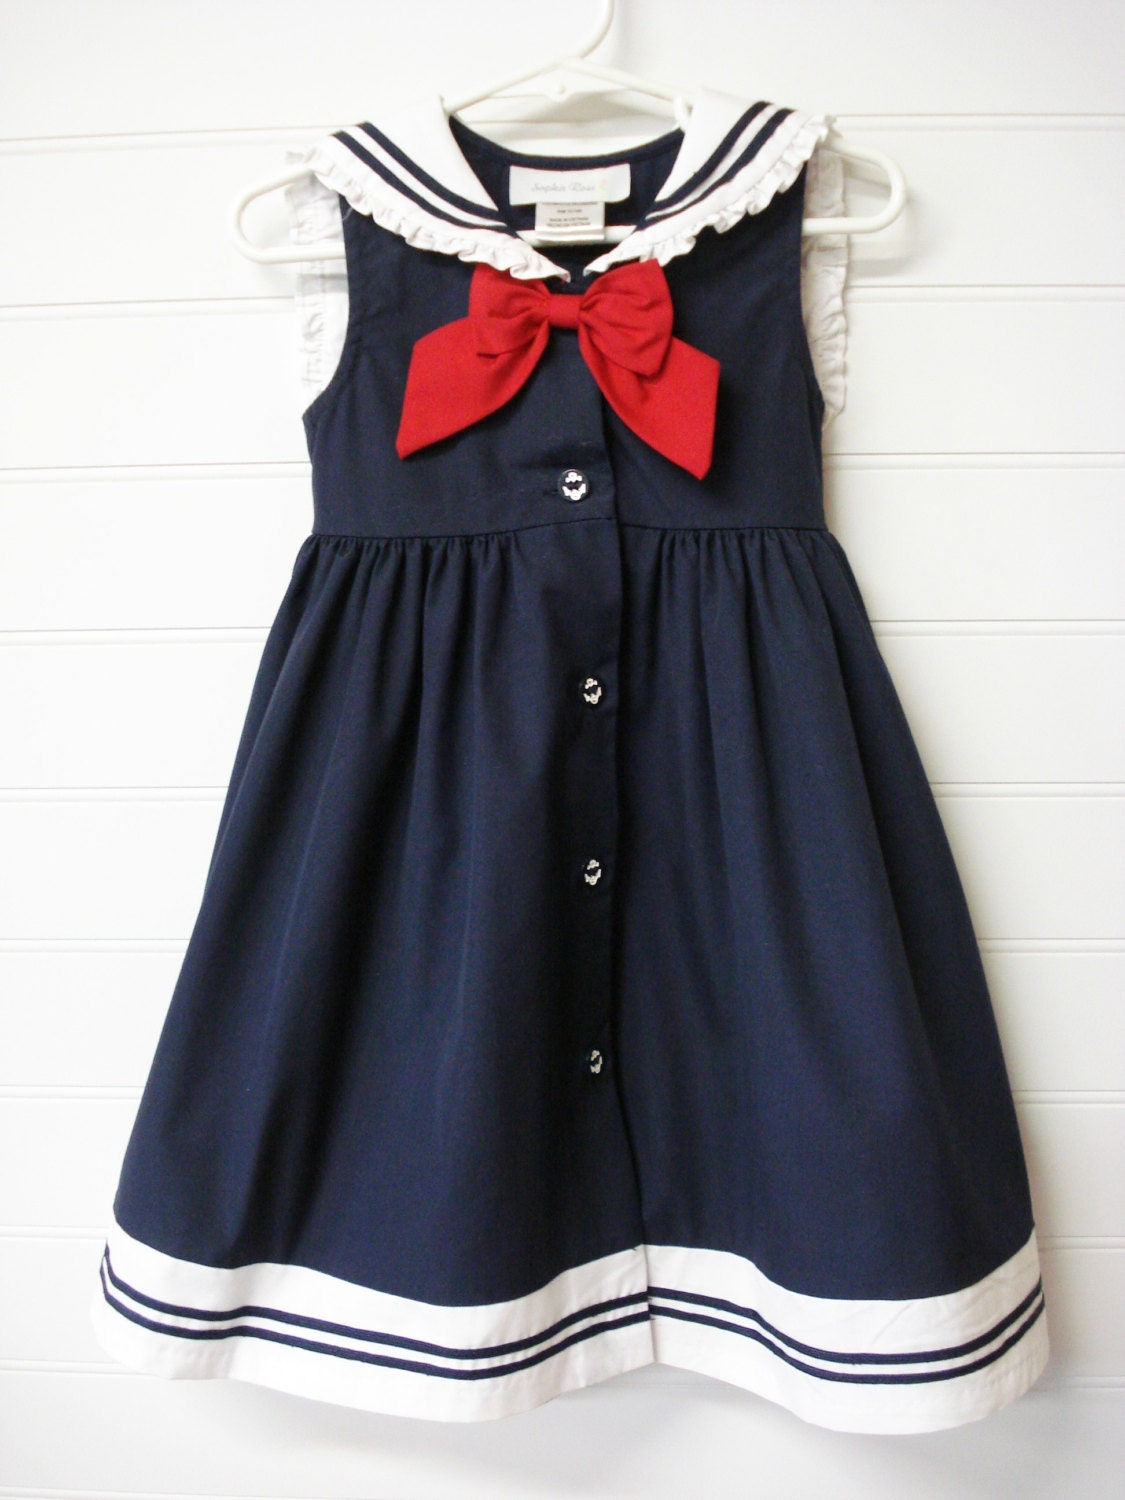 costume dress for children sailor dress in baby elf dresses for girls sailor dresses for babies reviews: robes for little girls sailor dress for dolls costume dressed for girls sailor dress for kids costume dresses for kids dresses costume for kids. Related Categories Women's Clothing & Accessories. Dresses;.